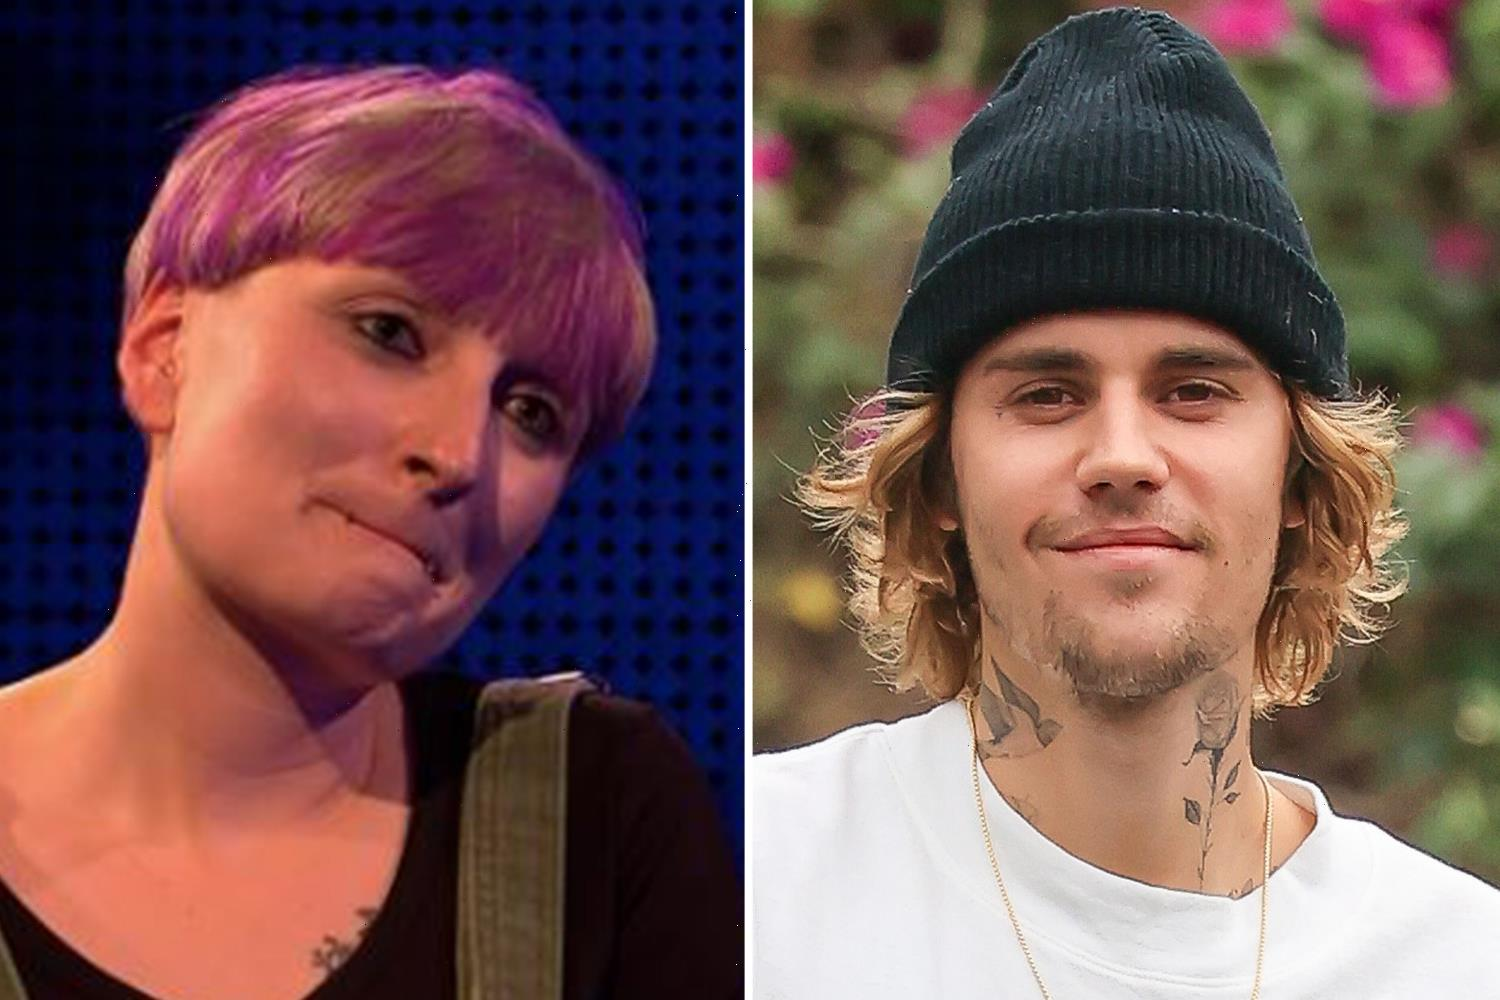 The Chase viewers in hysterics as player vows to spend winnings on visiting Justin Bieber museum in Canada